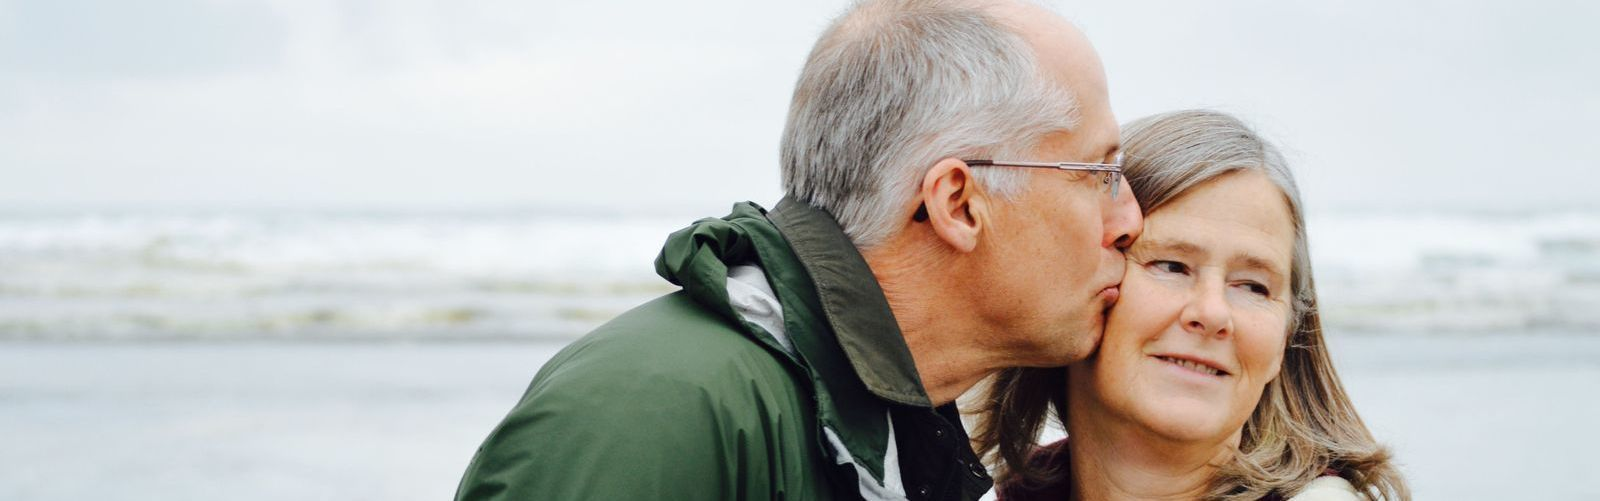 stock photo of man kissing woman at the beach